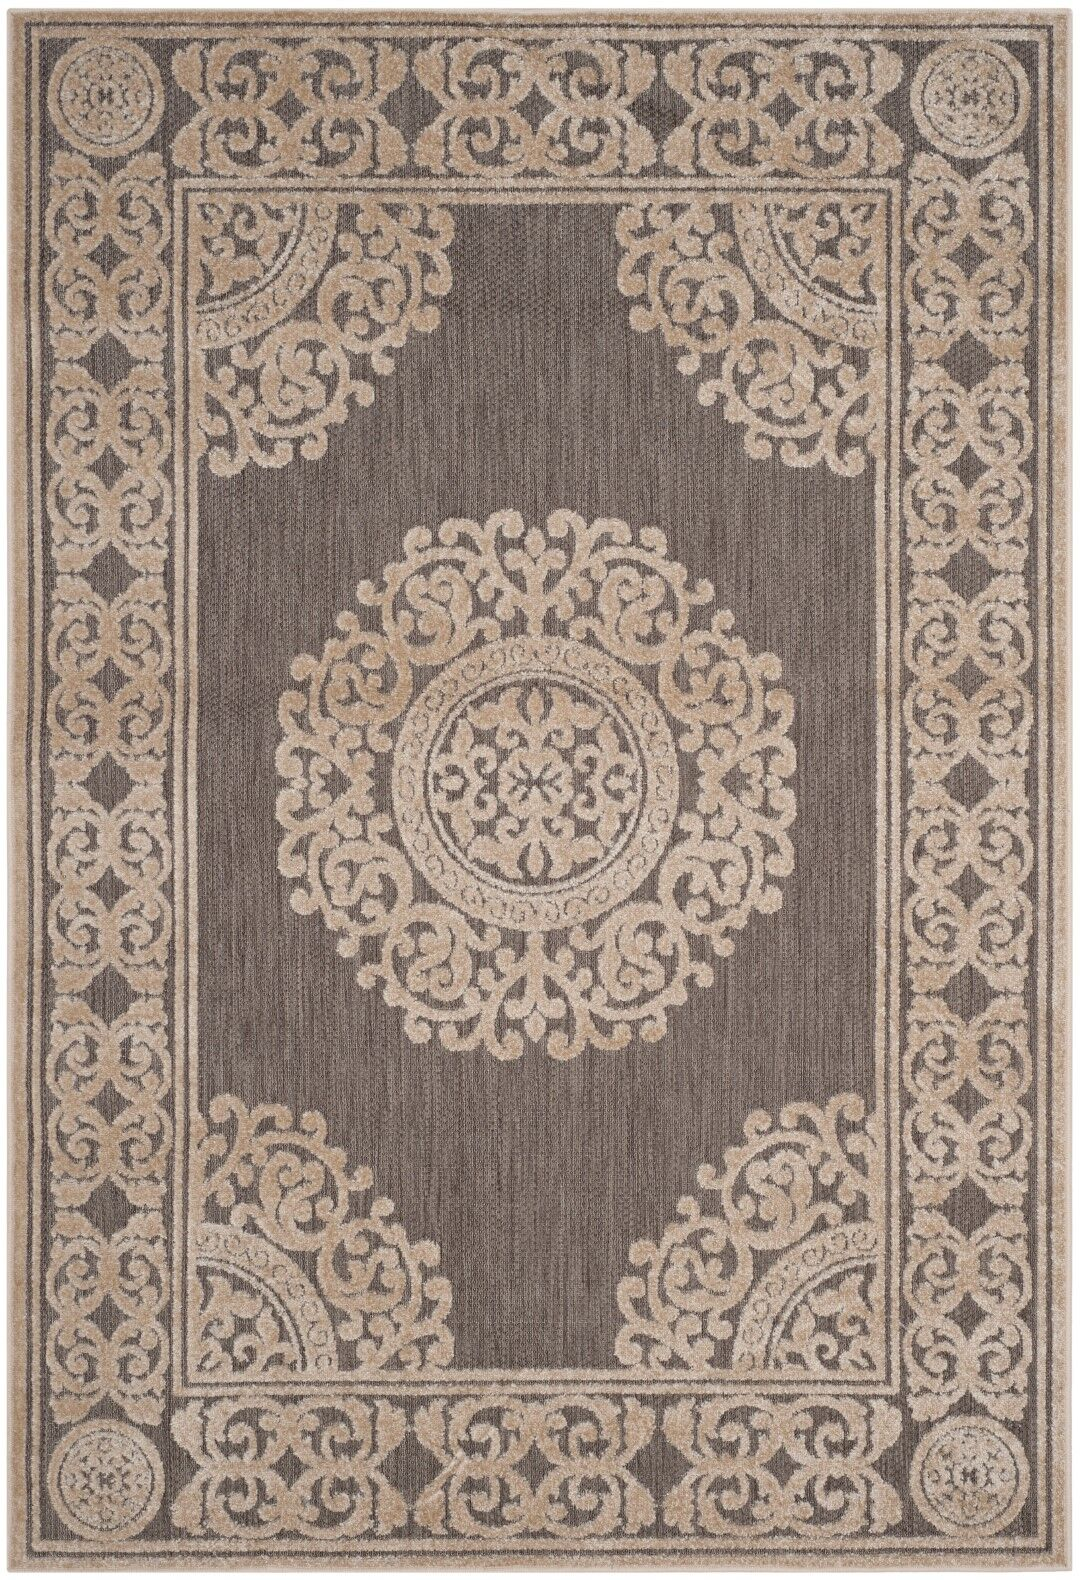 Parsons Taupe Area Rug Rug Size: Rectangle 8' x 11'2